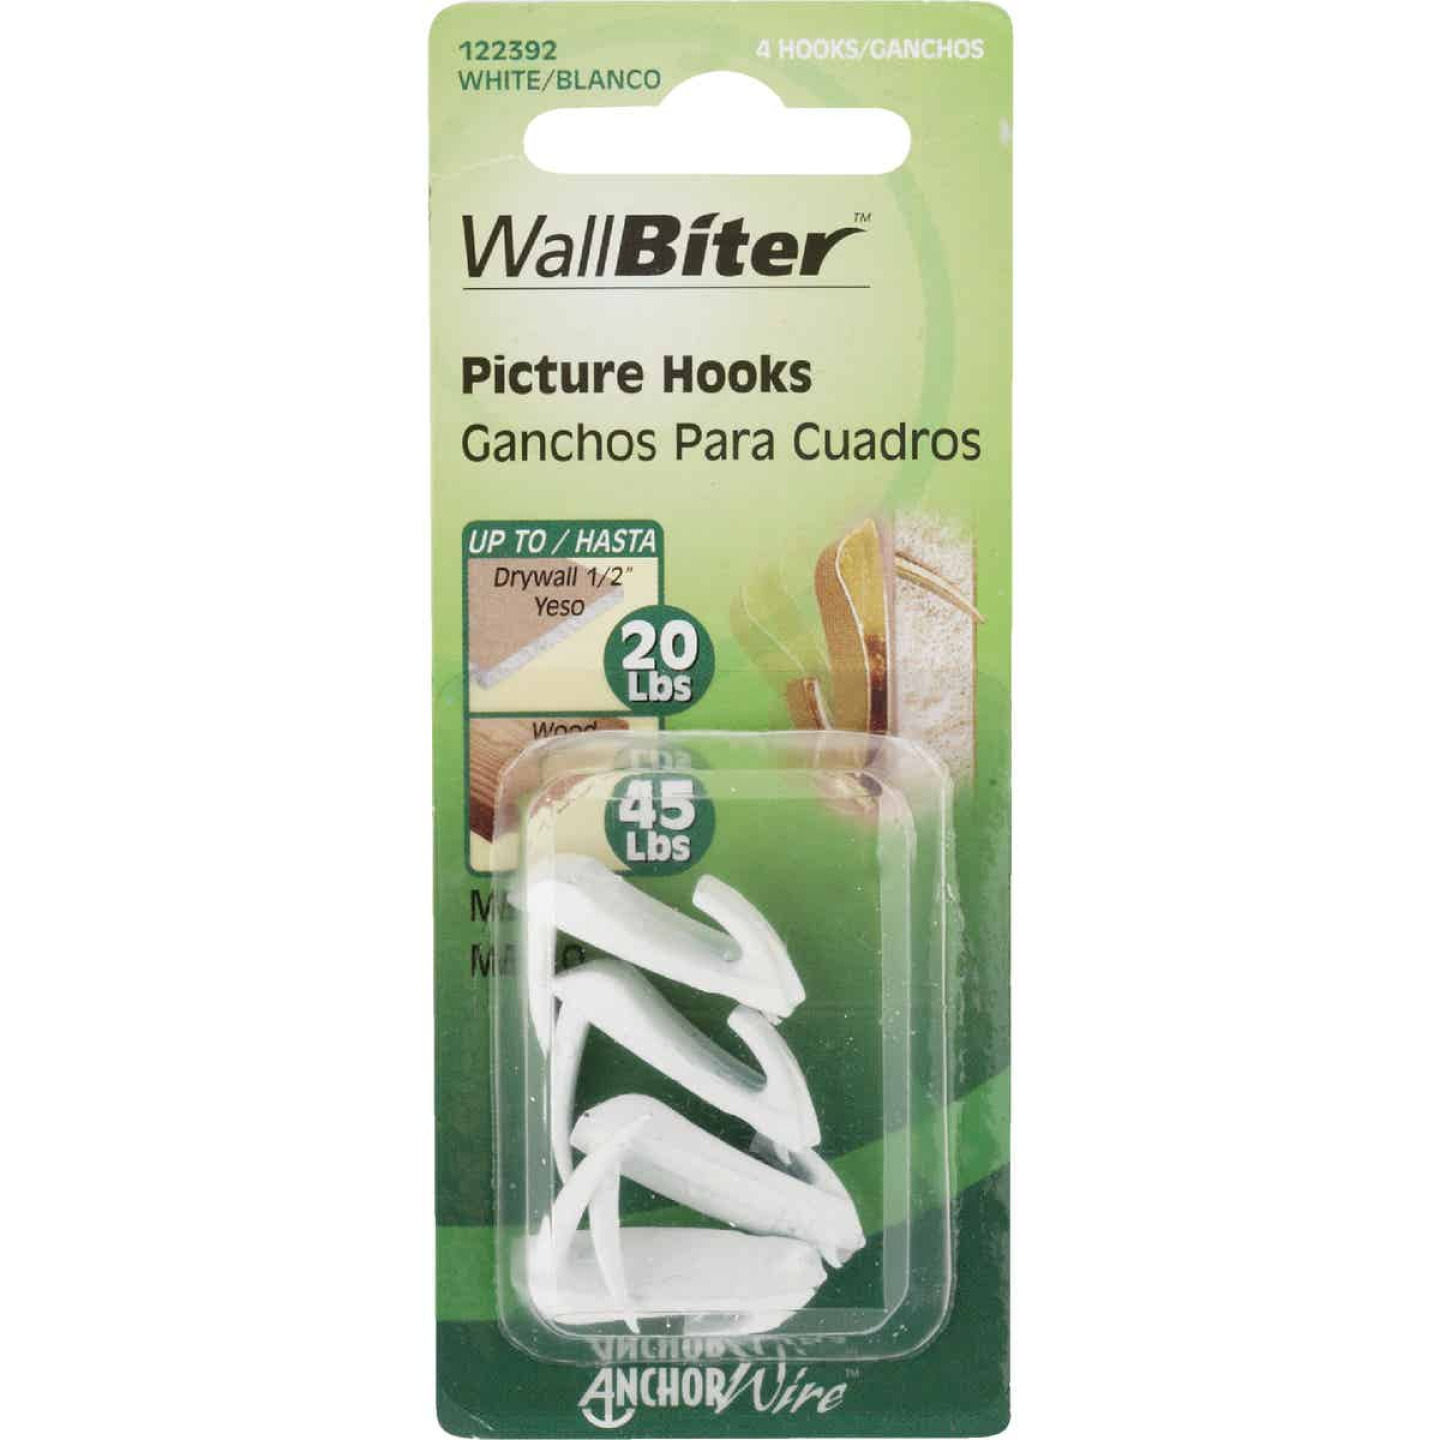 Hillman Anchor Wire 20 Lb. Capacity Wallbiter Picture Hanger (4 Count) Image 2